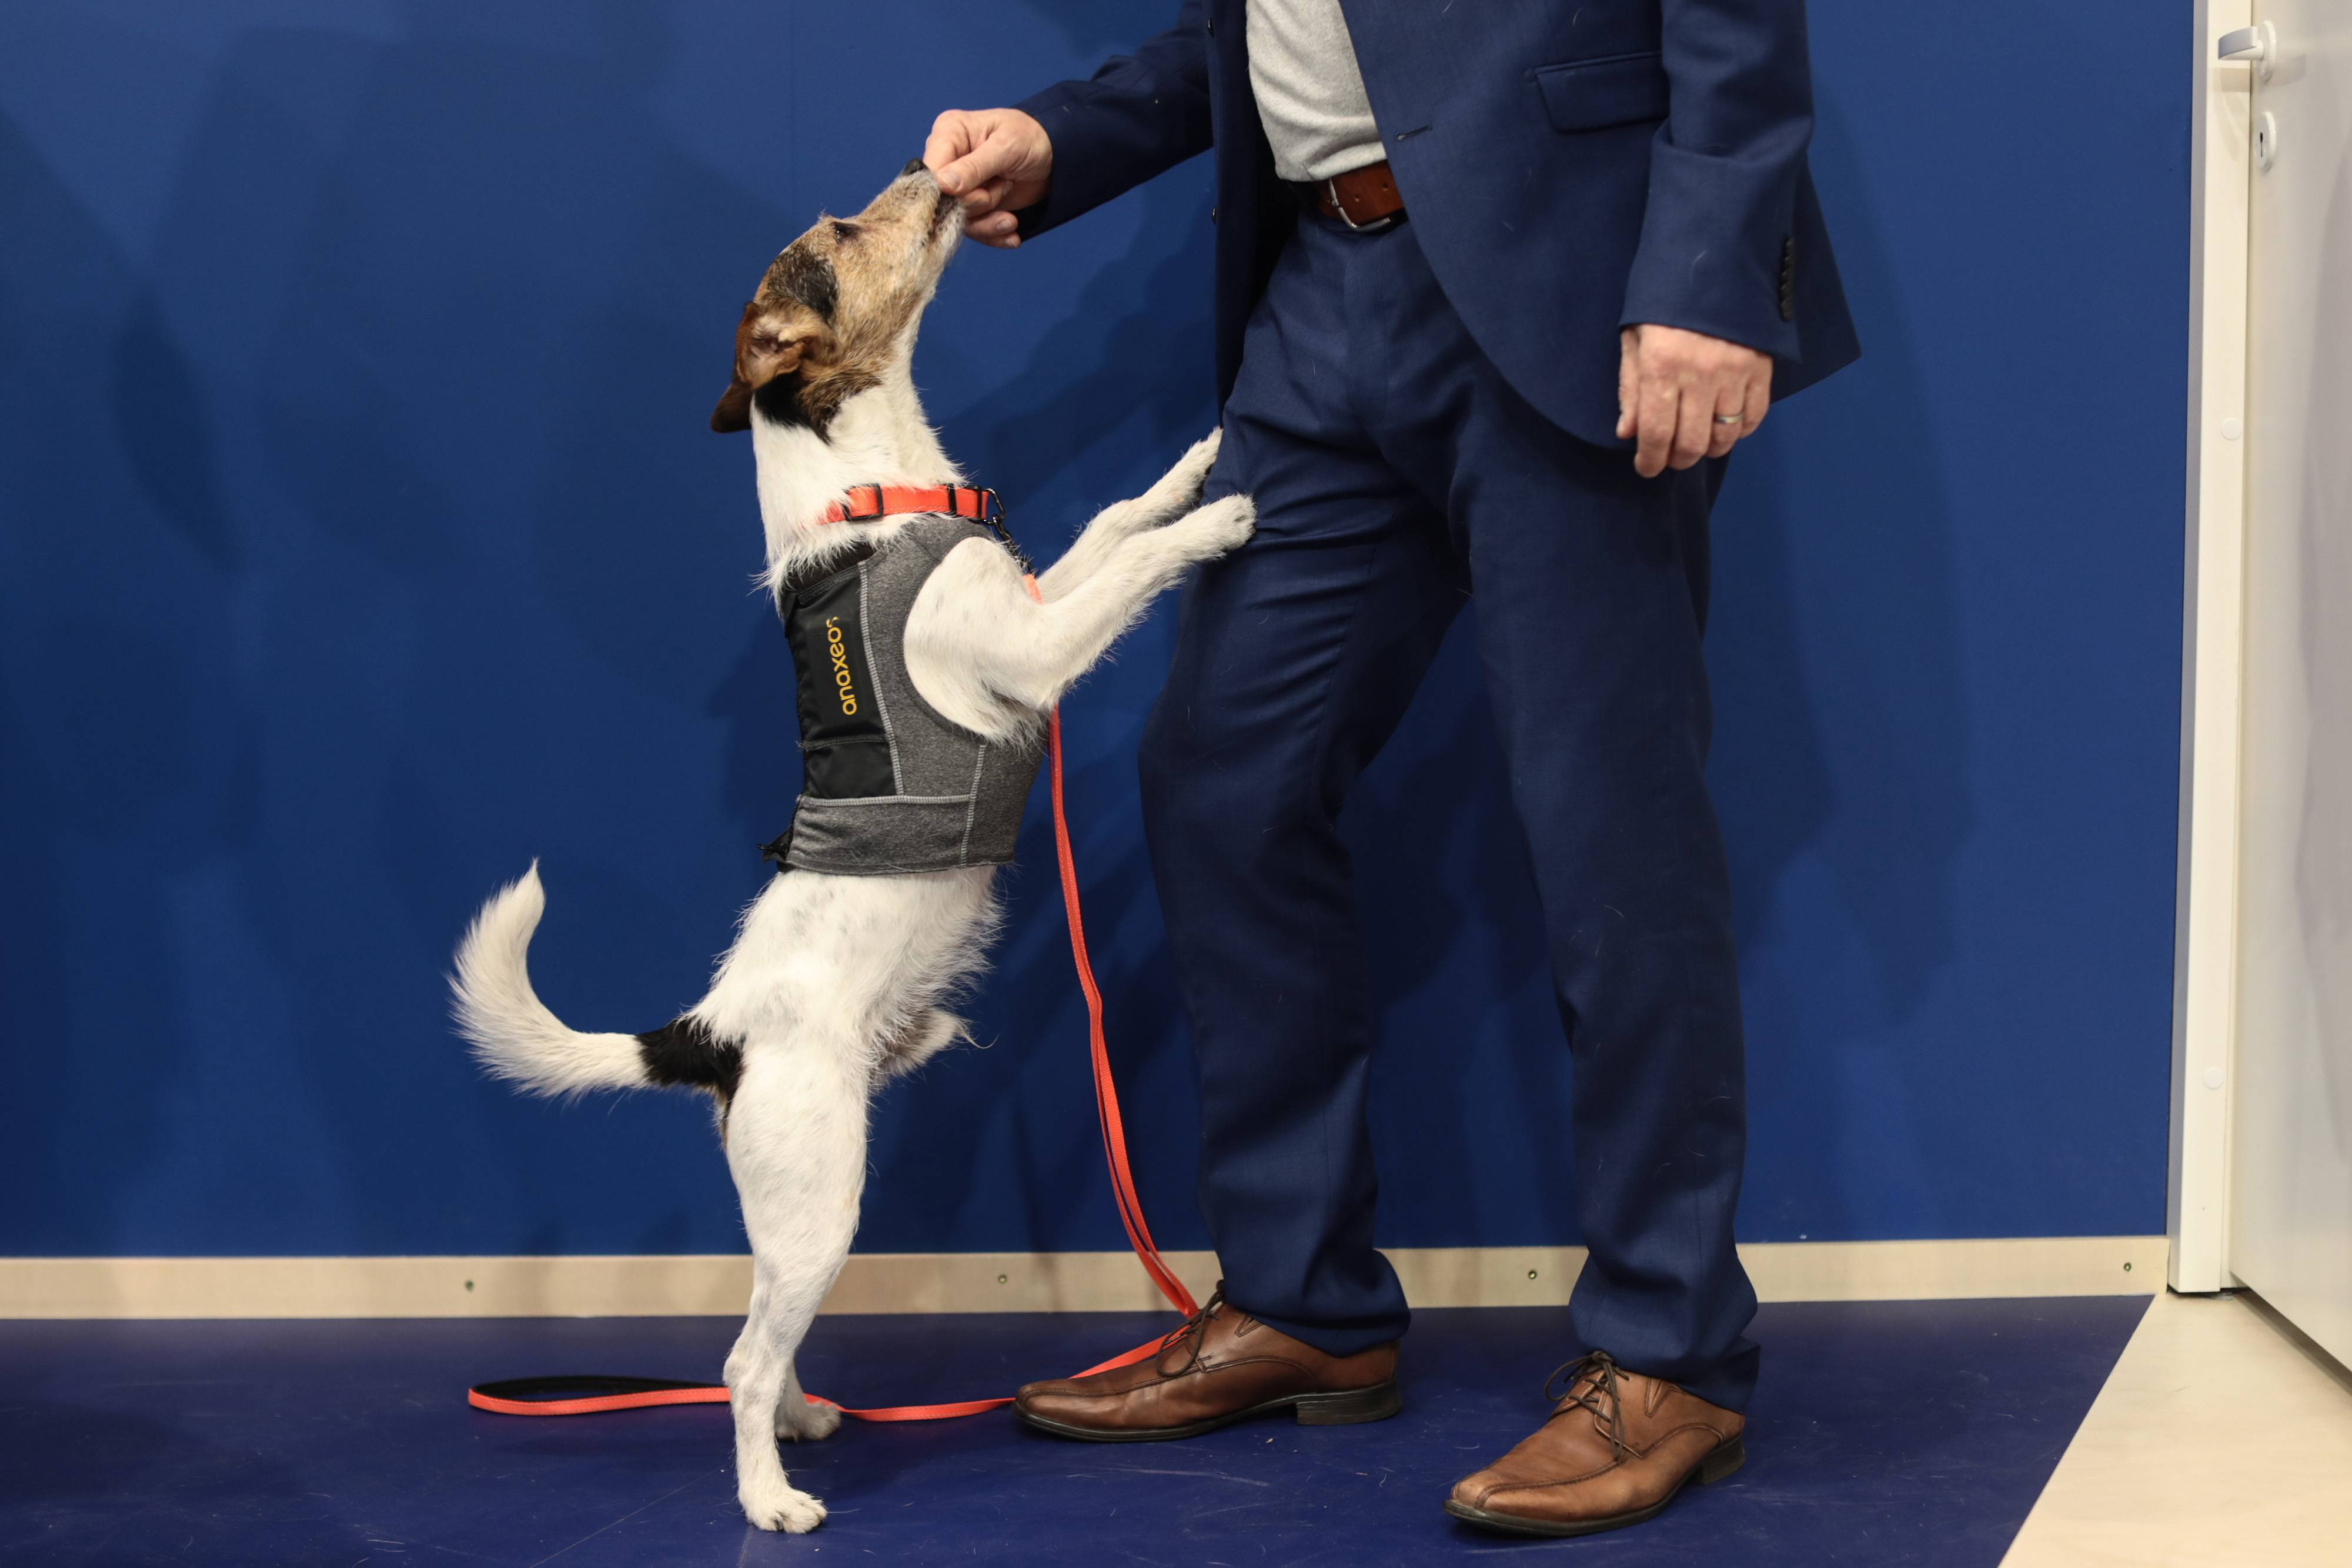 A dog wears a vest containing an anaxeos sensor at the Sense of Intelligence stand at the Mobile World Congress in Barcelona, Spain, on Feb. 27, 2018.